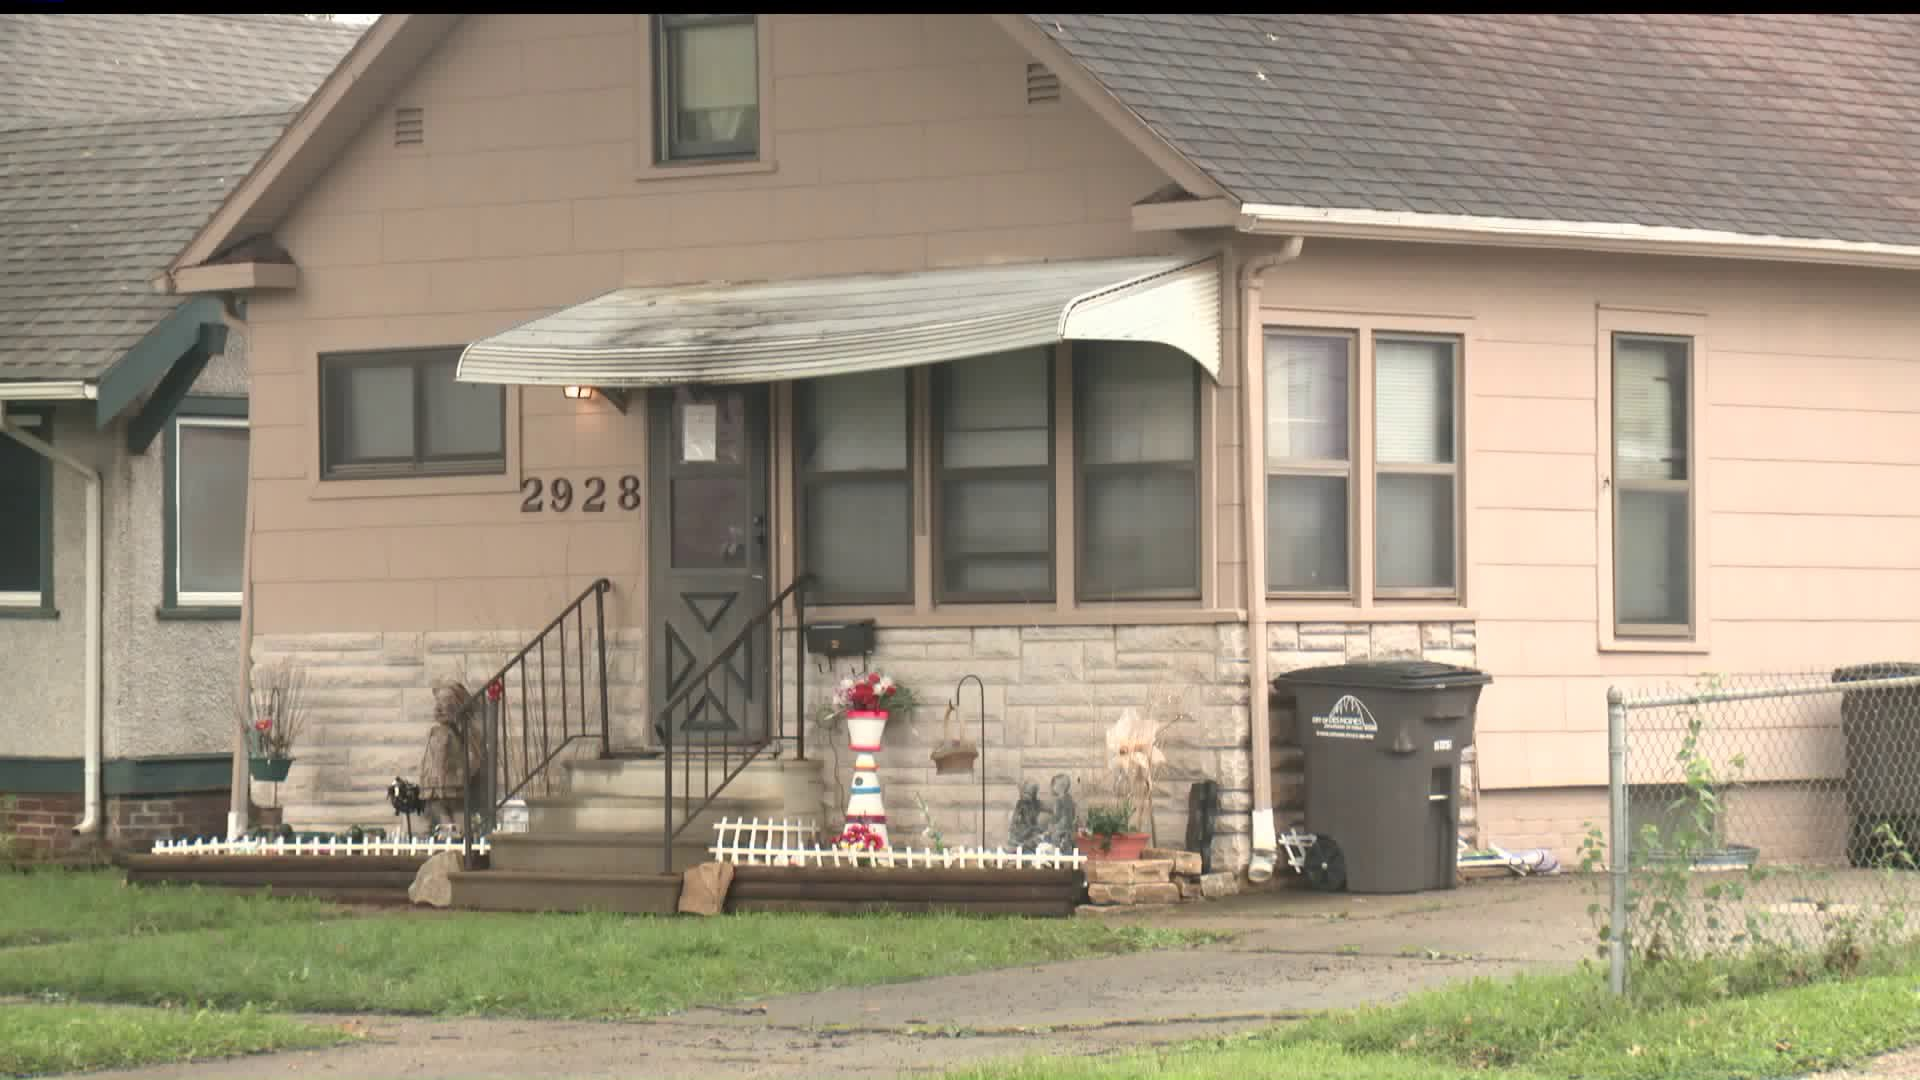 Des Moines Man Shot Dead After Assaulting Ex-Wife, Court Documents Say 1